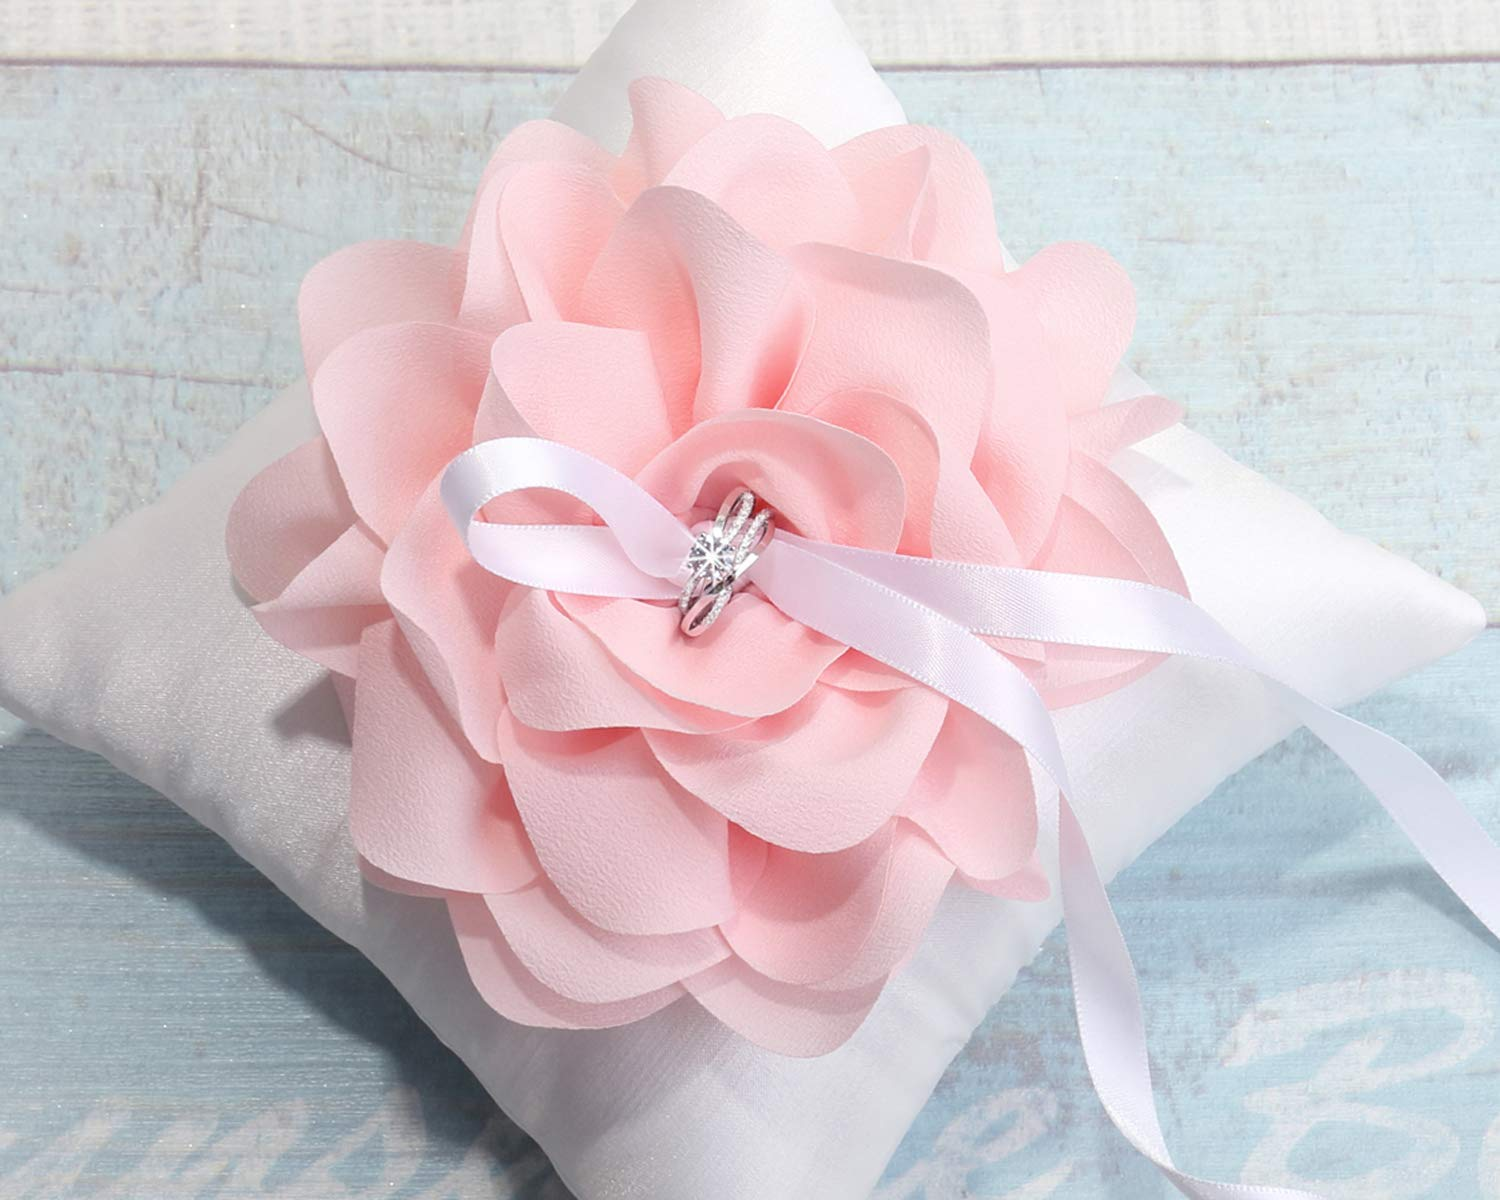 Wedding Ring Pillow with oversized Pink Flower, Wedding Ring Bearer Pillow, Ring Pillow Decoration, Wedding Ring Holder,Wedding decor -T22